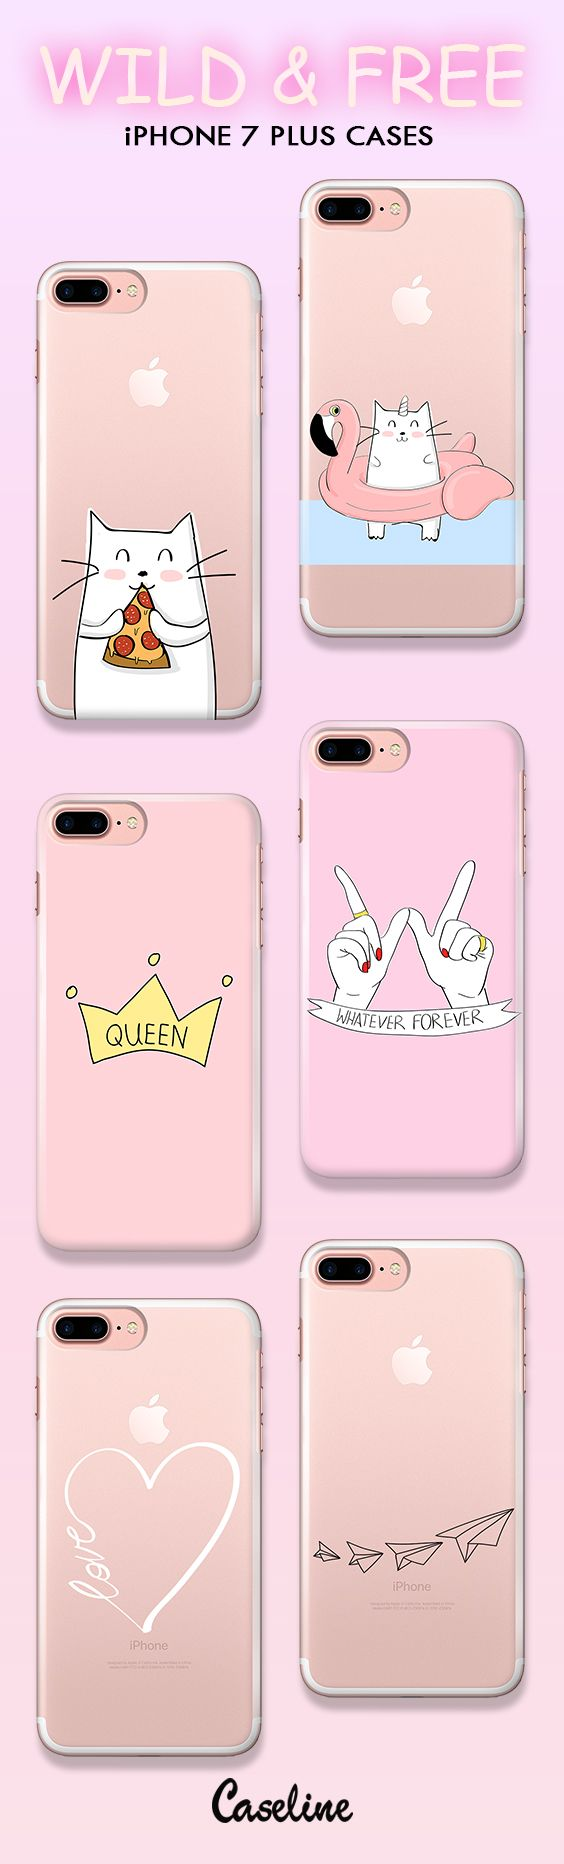 #etui #case #cover #apple #iphone7plus #allpink #sweet #pink #cats #qeen #heart #foreverwhatever #pizza #wildandfree #bestcases #thebestcases #caseline #lineofcases #wzory